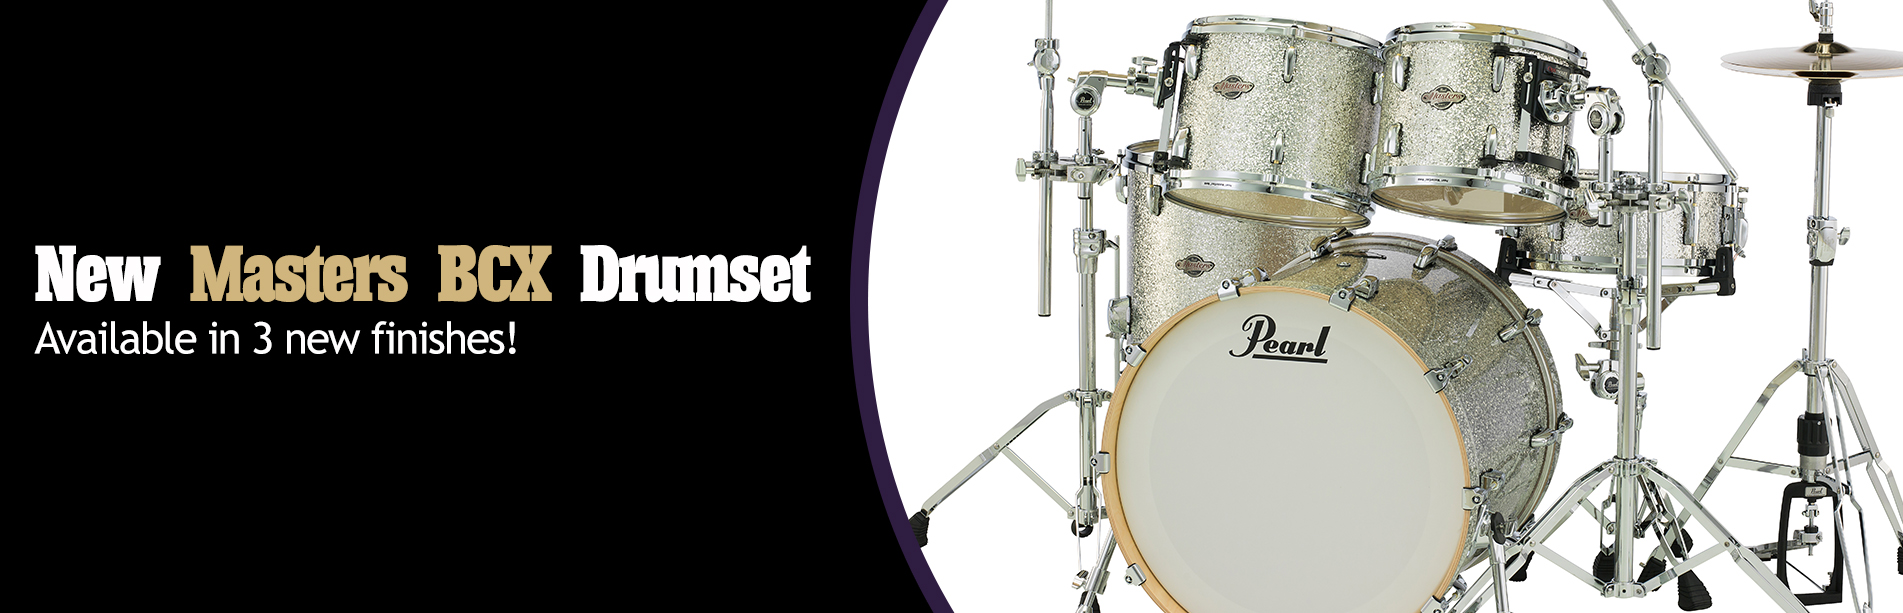 New-Masters-BCX-Drumset-SP